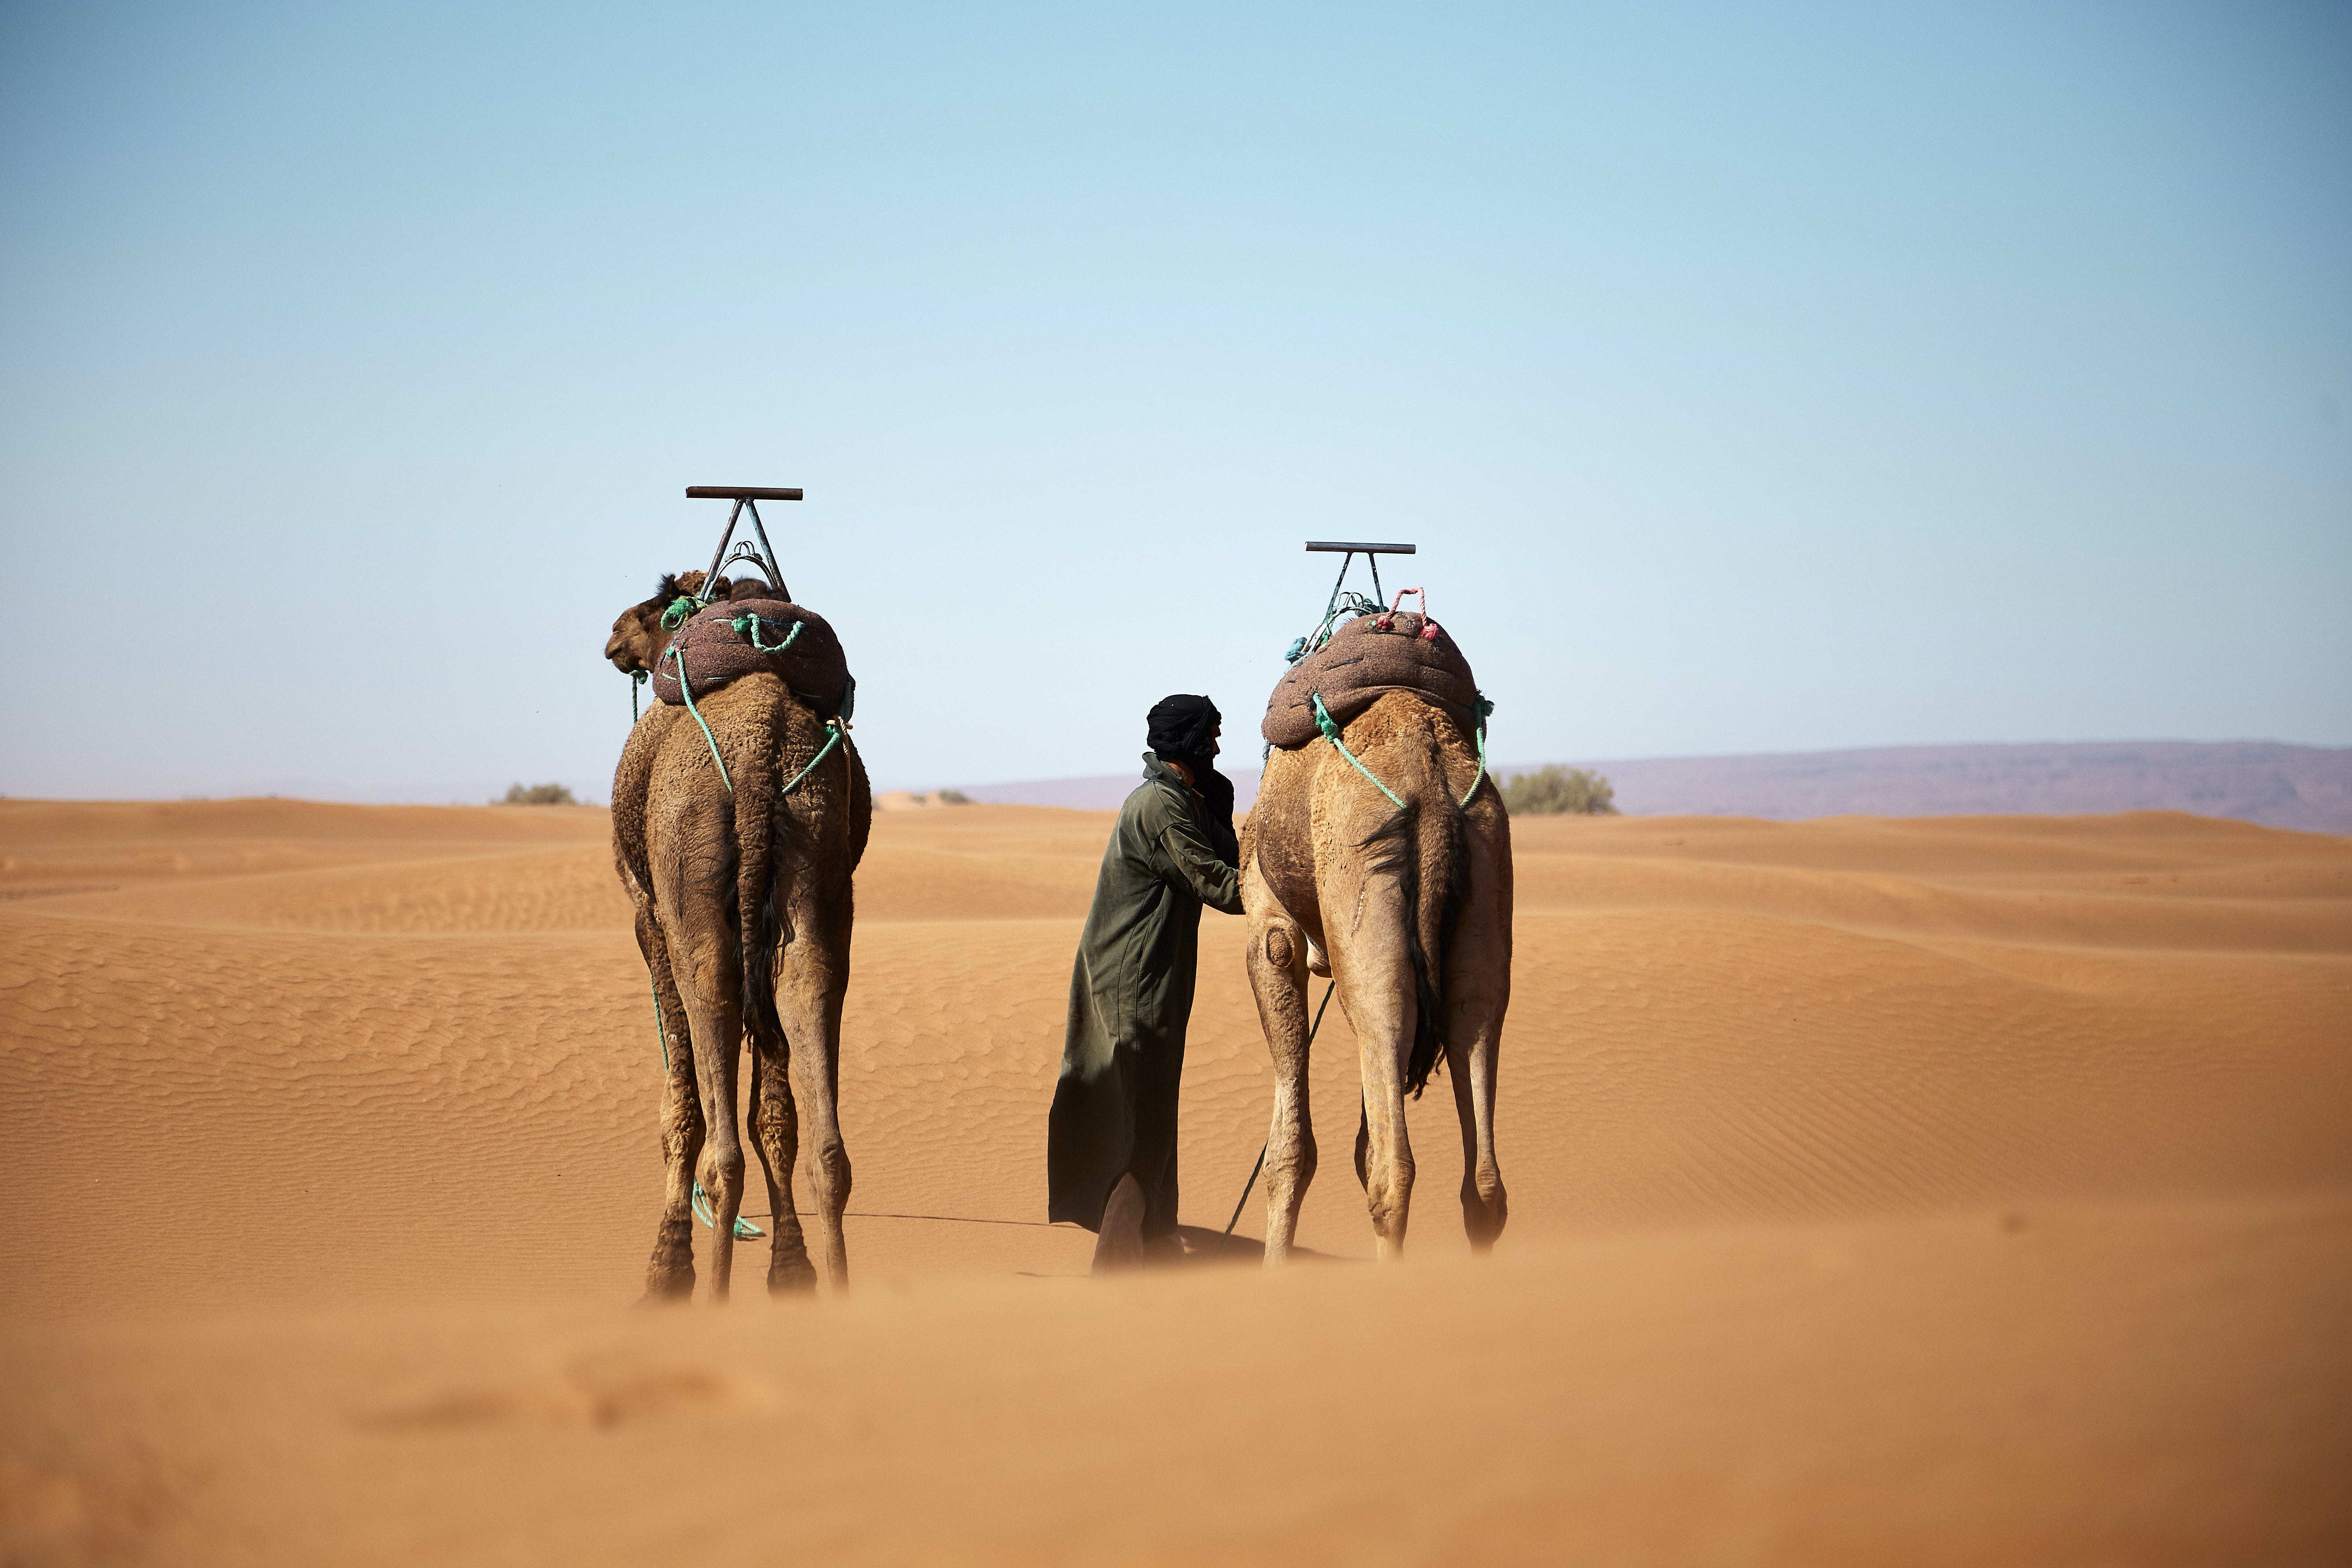 person walking with two camels on desert during daytime